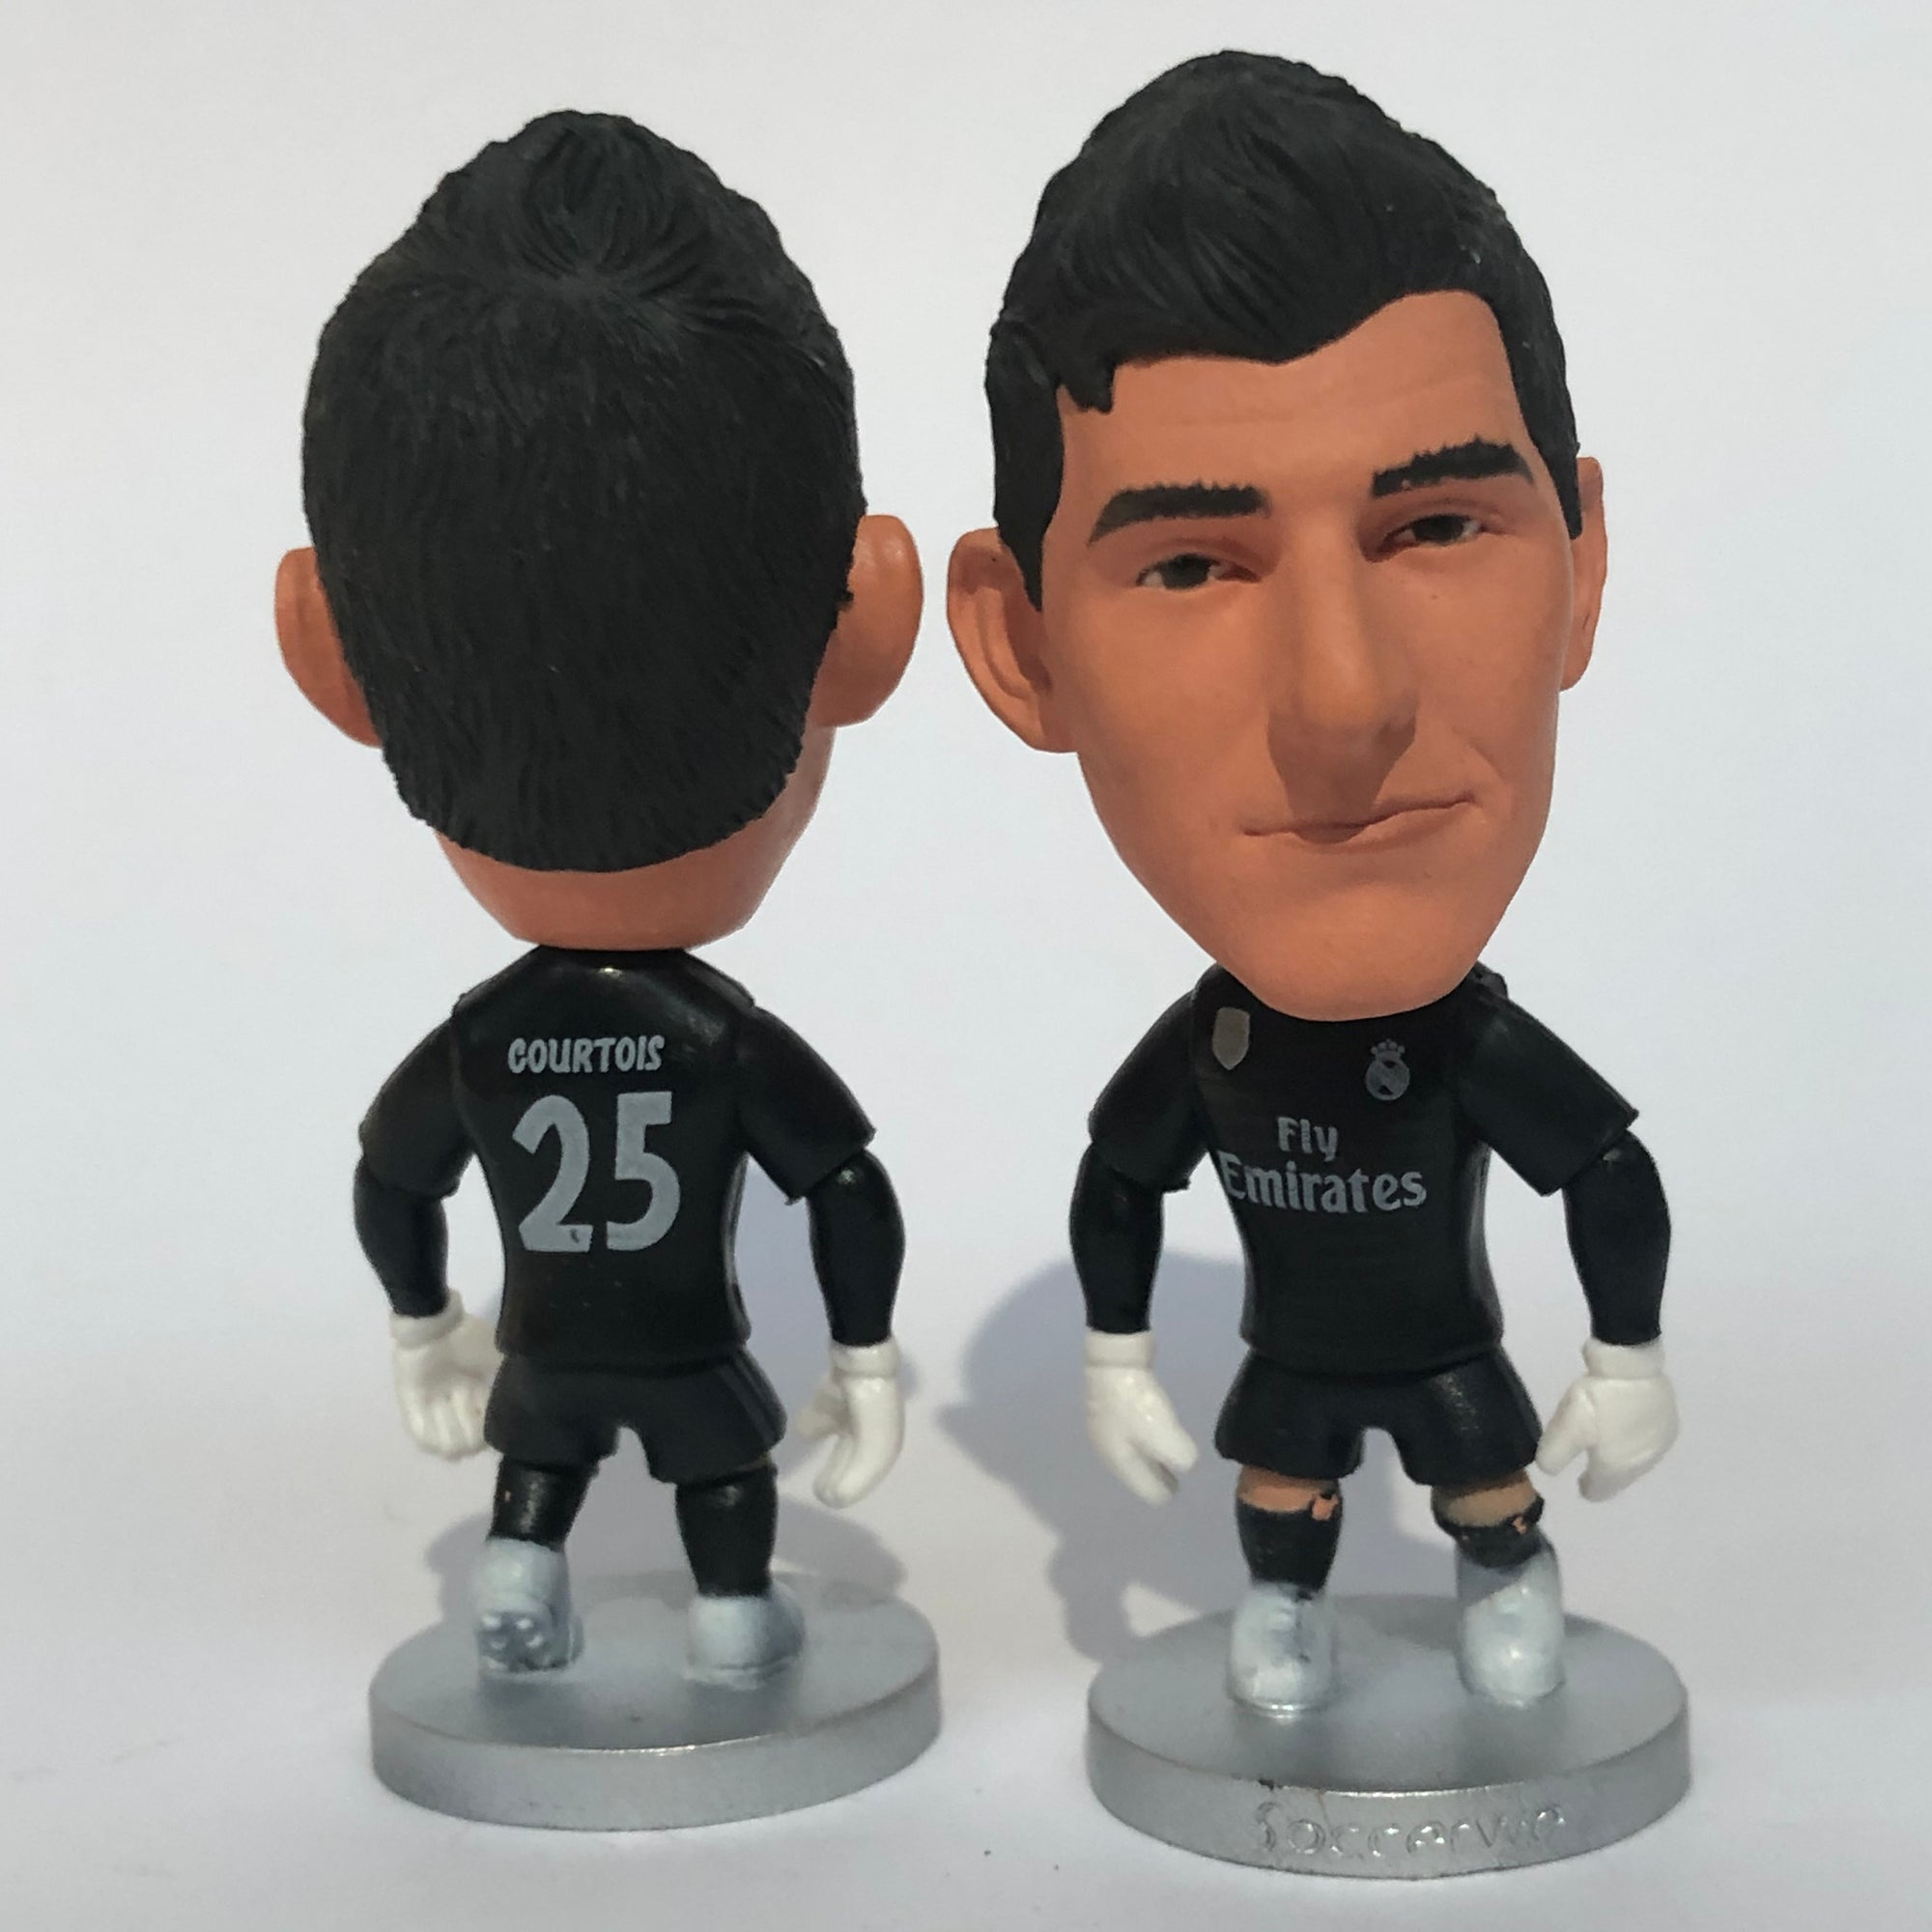 Courtois Real Madrid Figurine